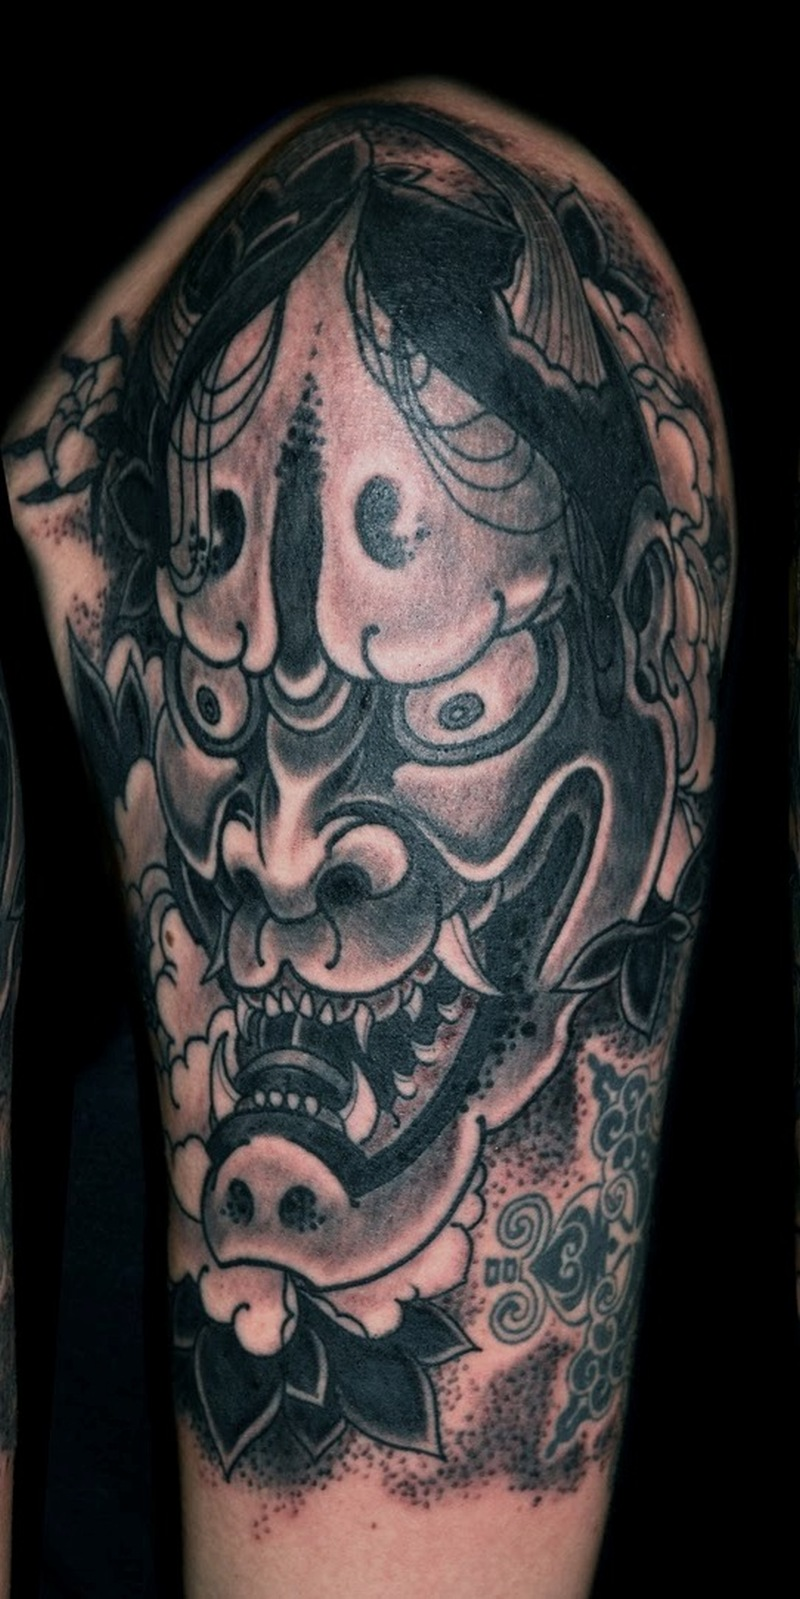 Black n grey demon half sleeve tattoo design